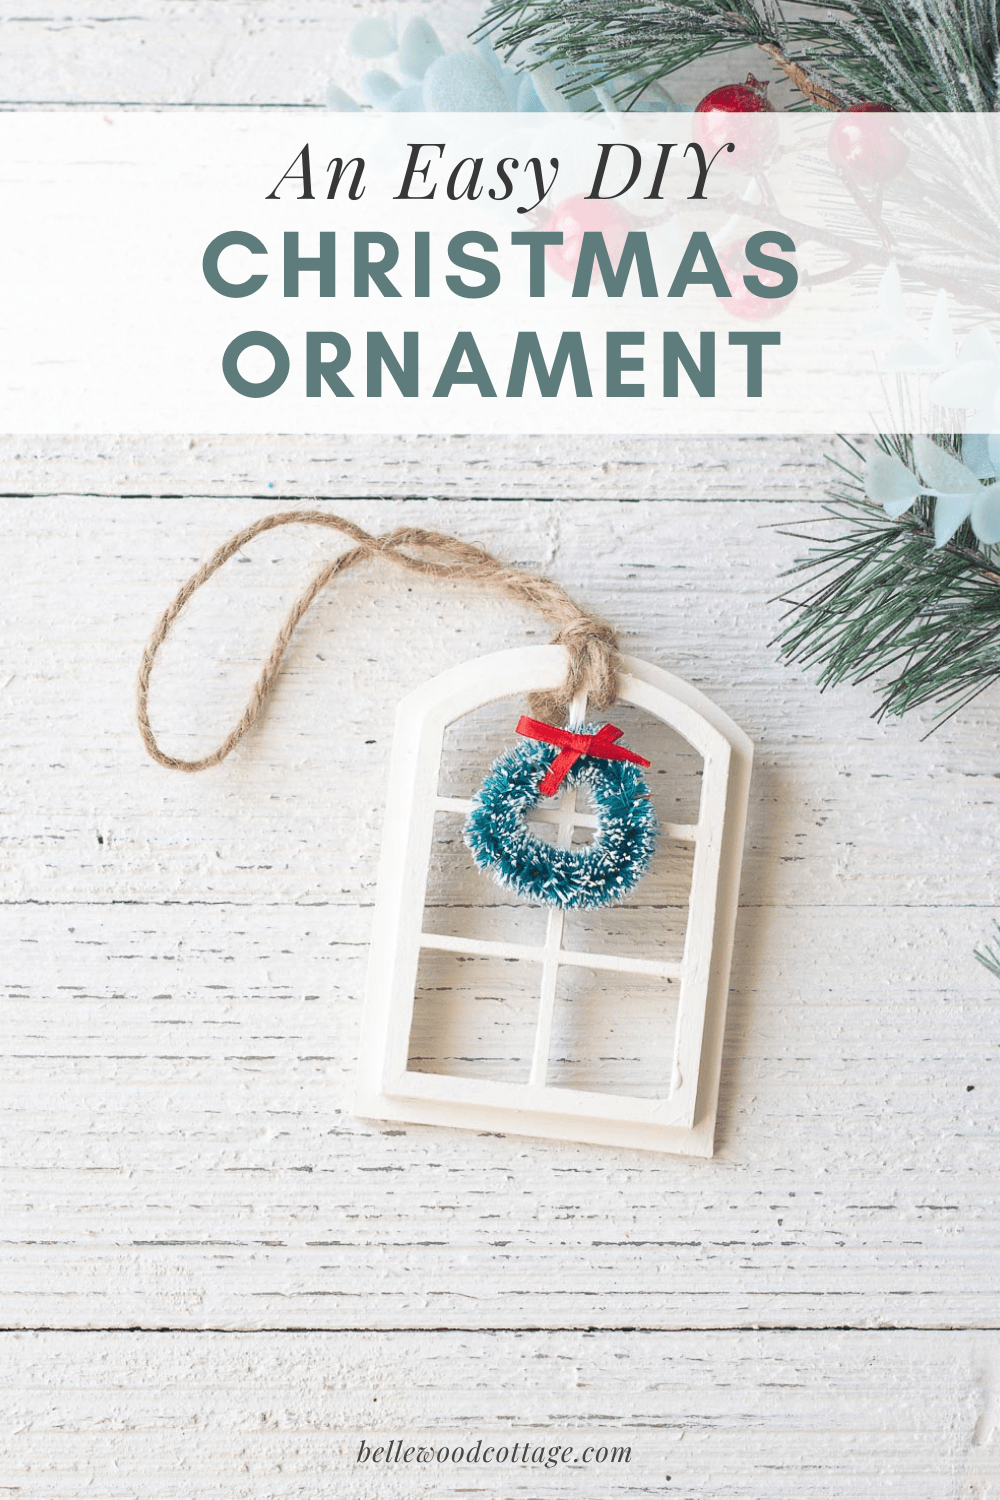 A DIY Christmas ornament (a miniature window with a wreath) on a wooden surface.